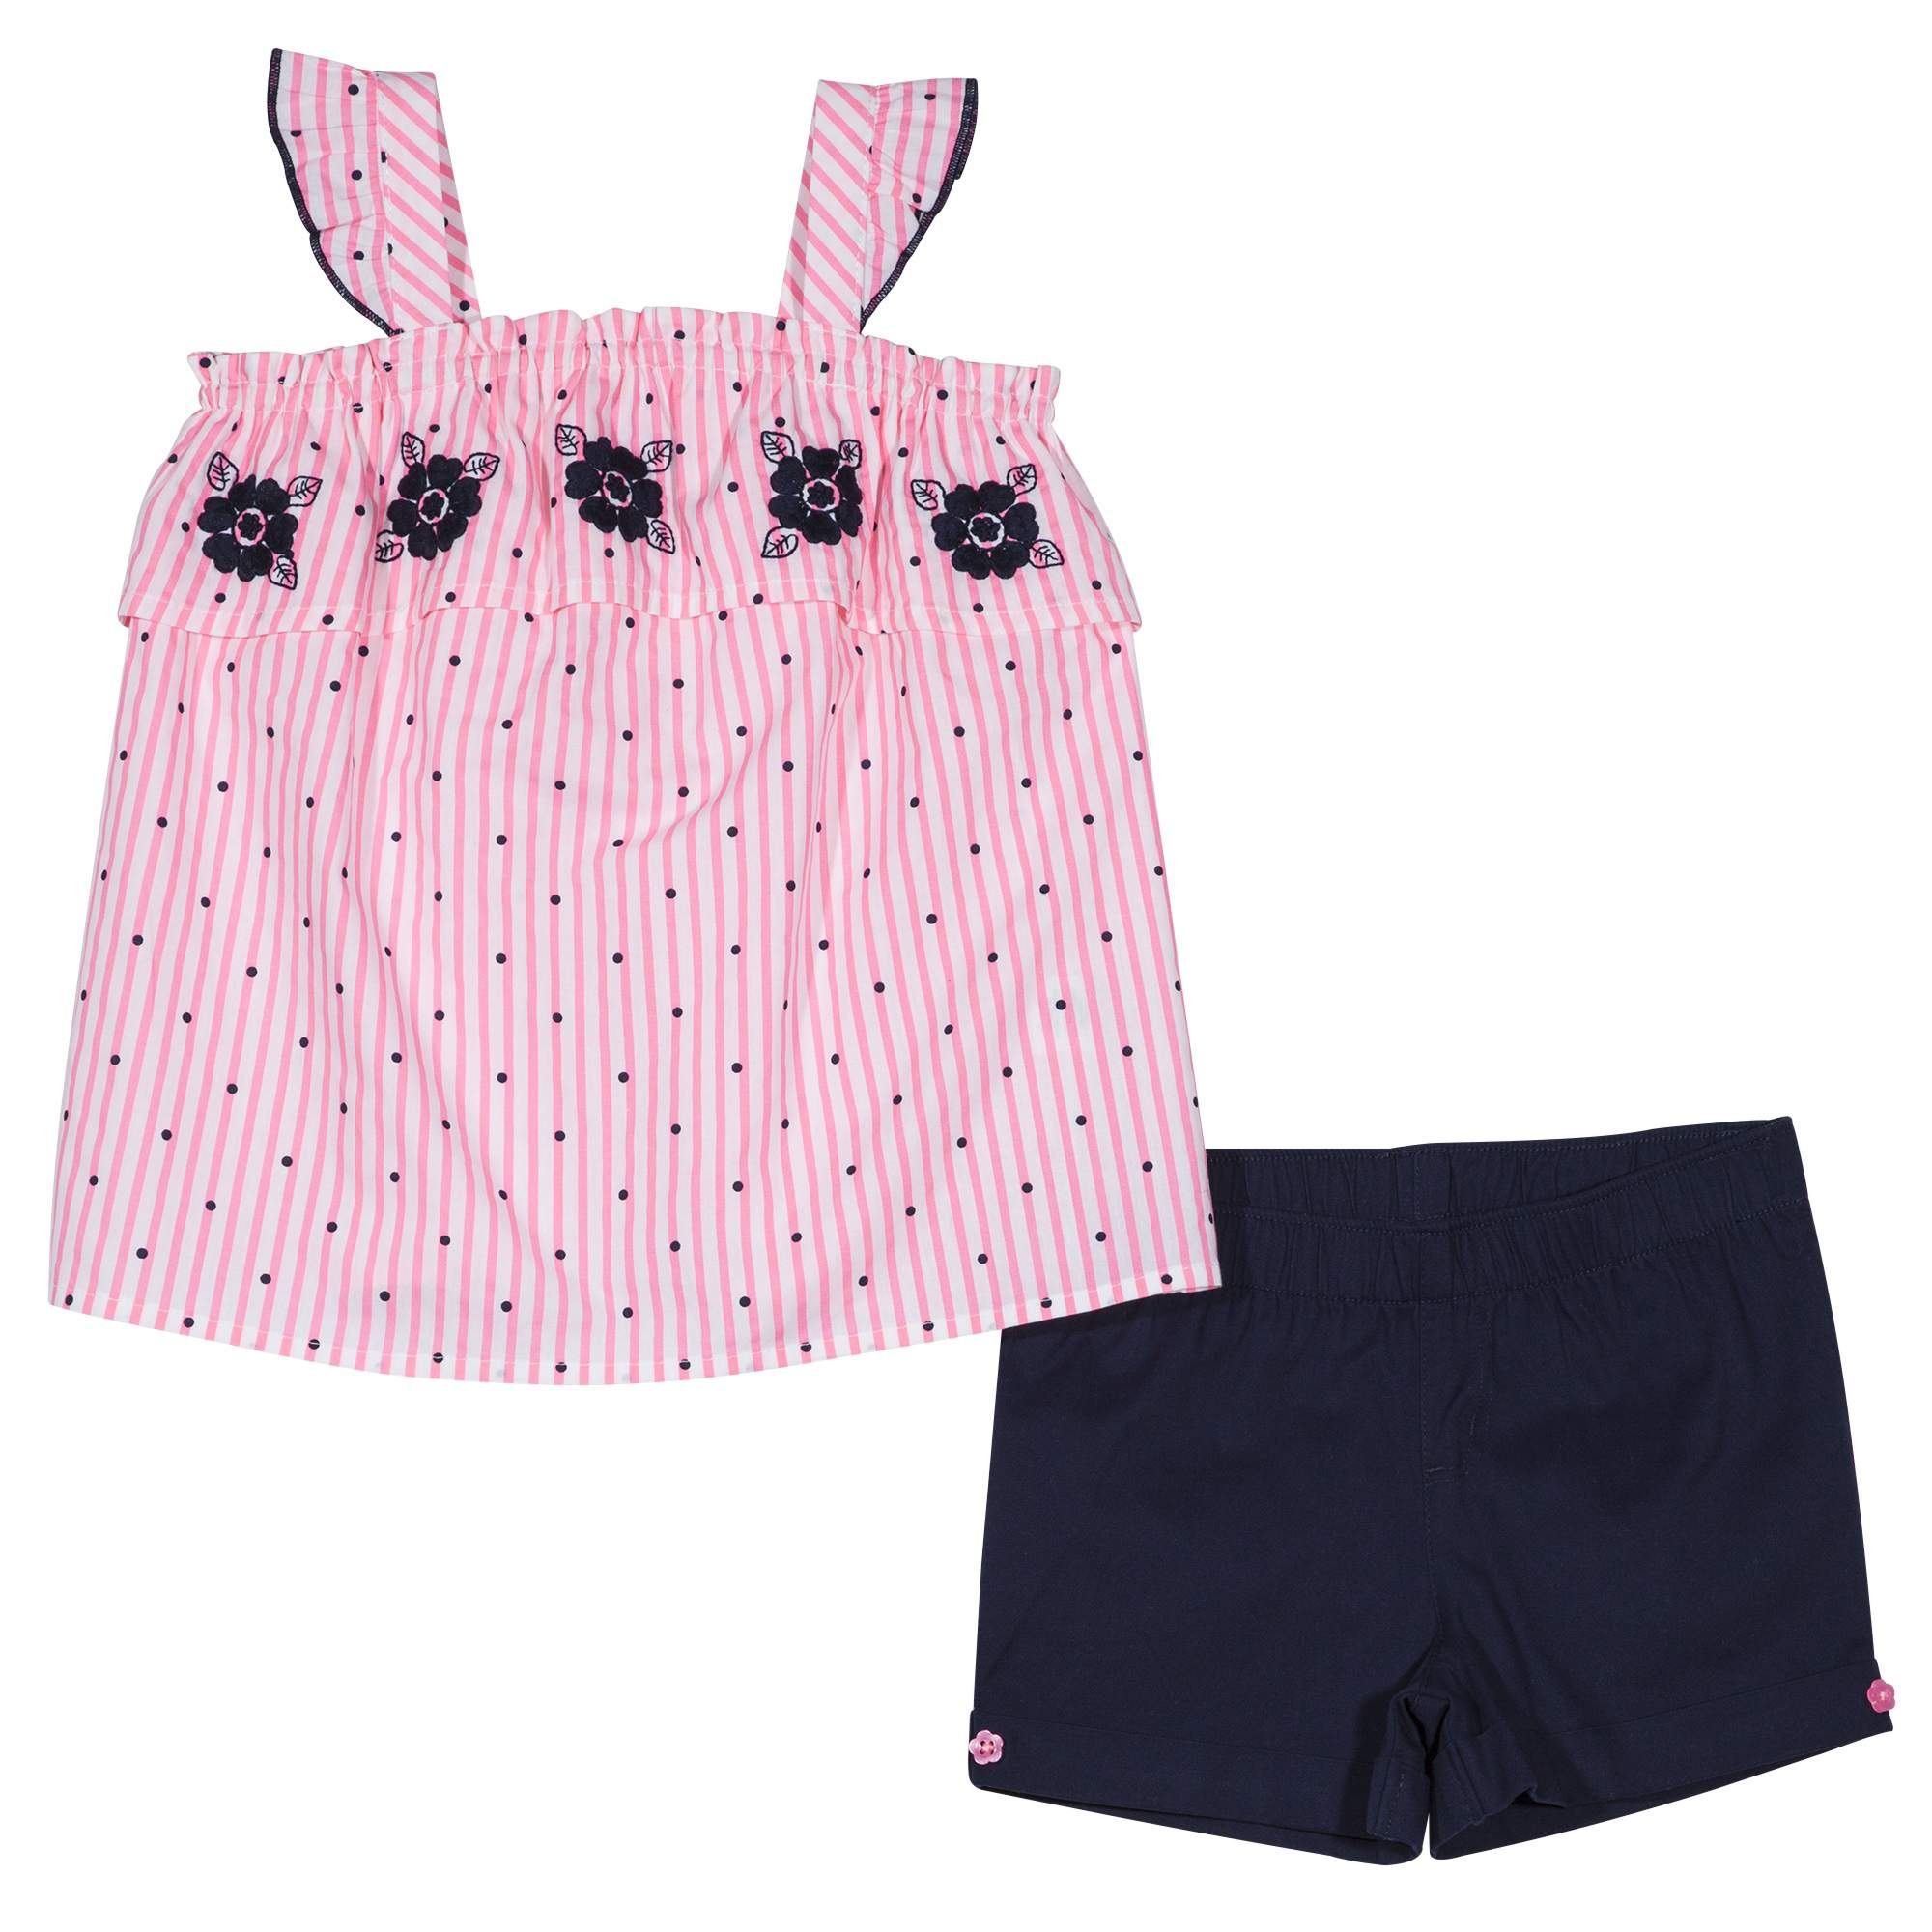 Healthtex Toddler Girl Embroidered Floral Tank Top & Pull-On Shorts, 2pc Outfit Set